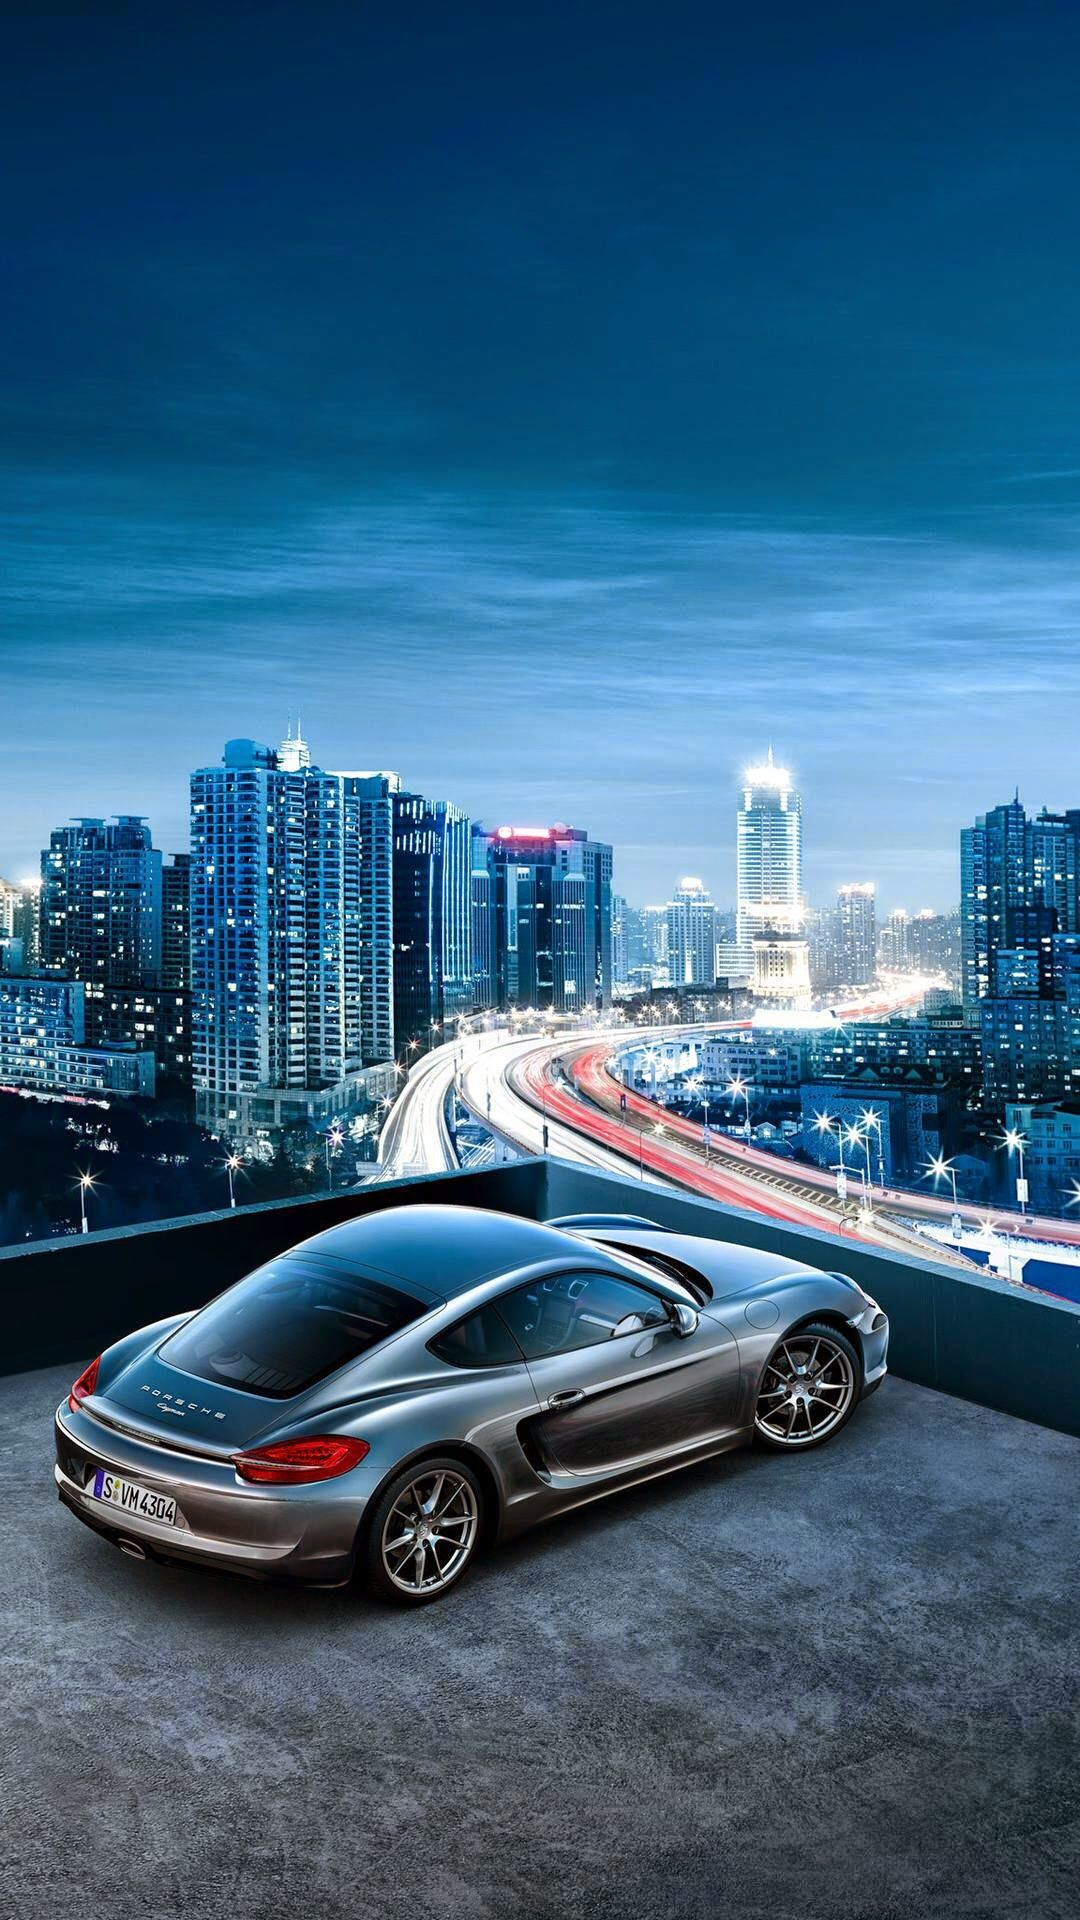 Porsche Cayenne City View Iphone Wallpaper Wallpaper